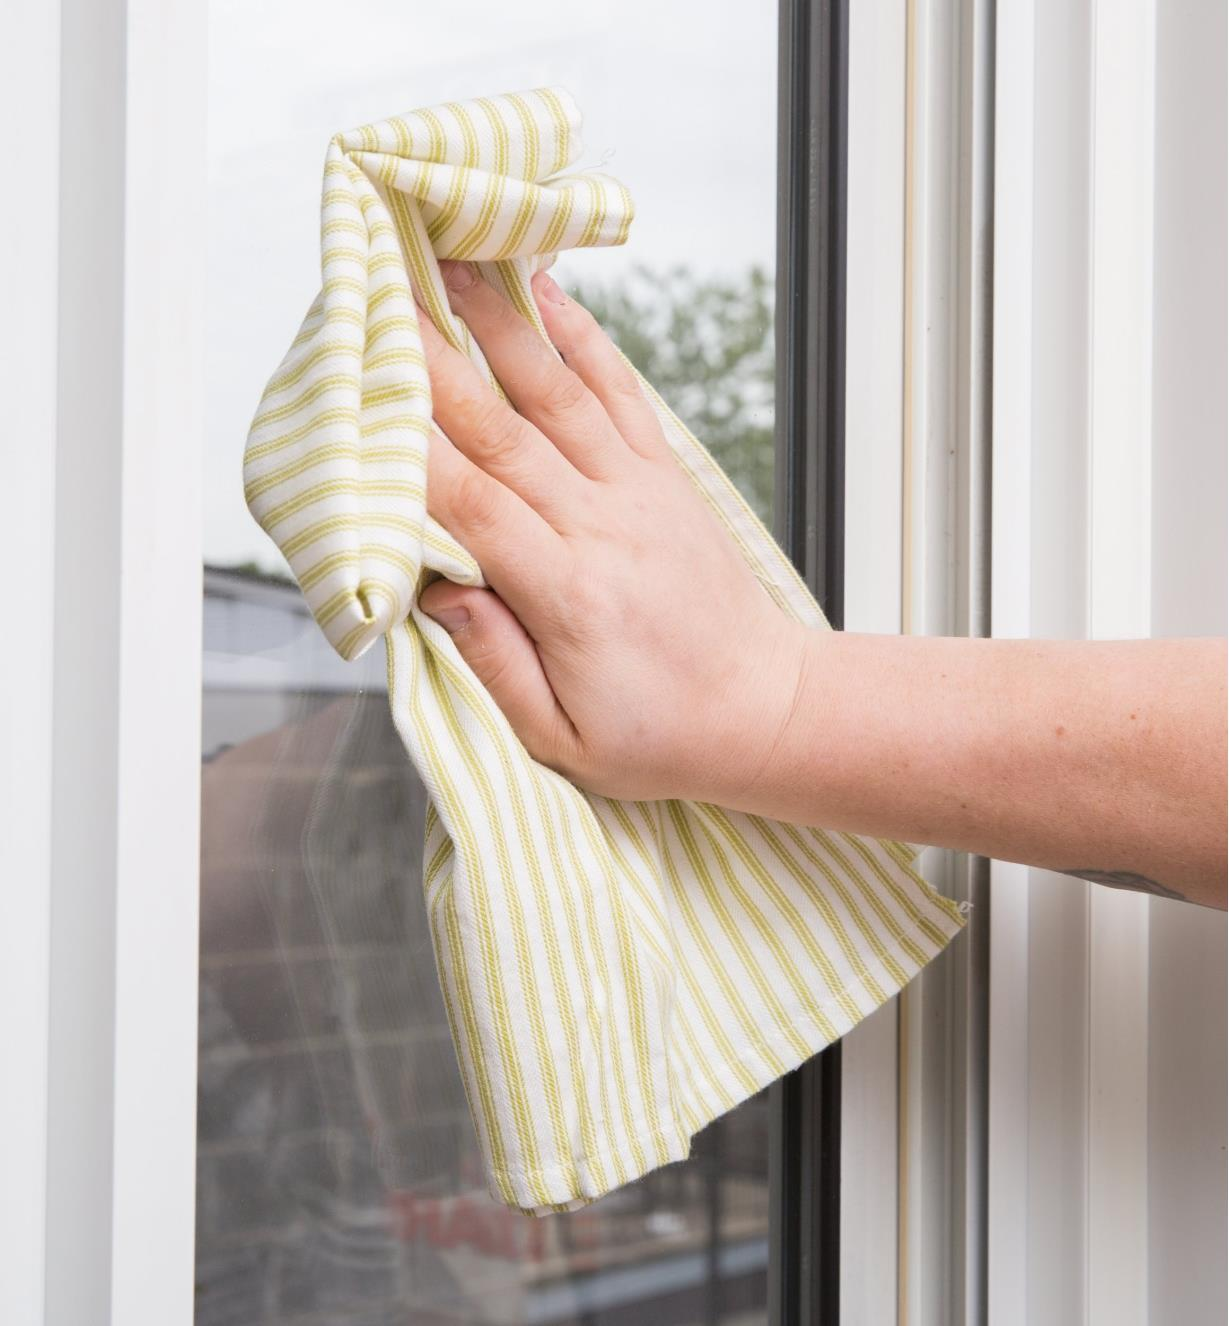 Wiping a windowpane with a Green Stripe Glass Towel